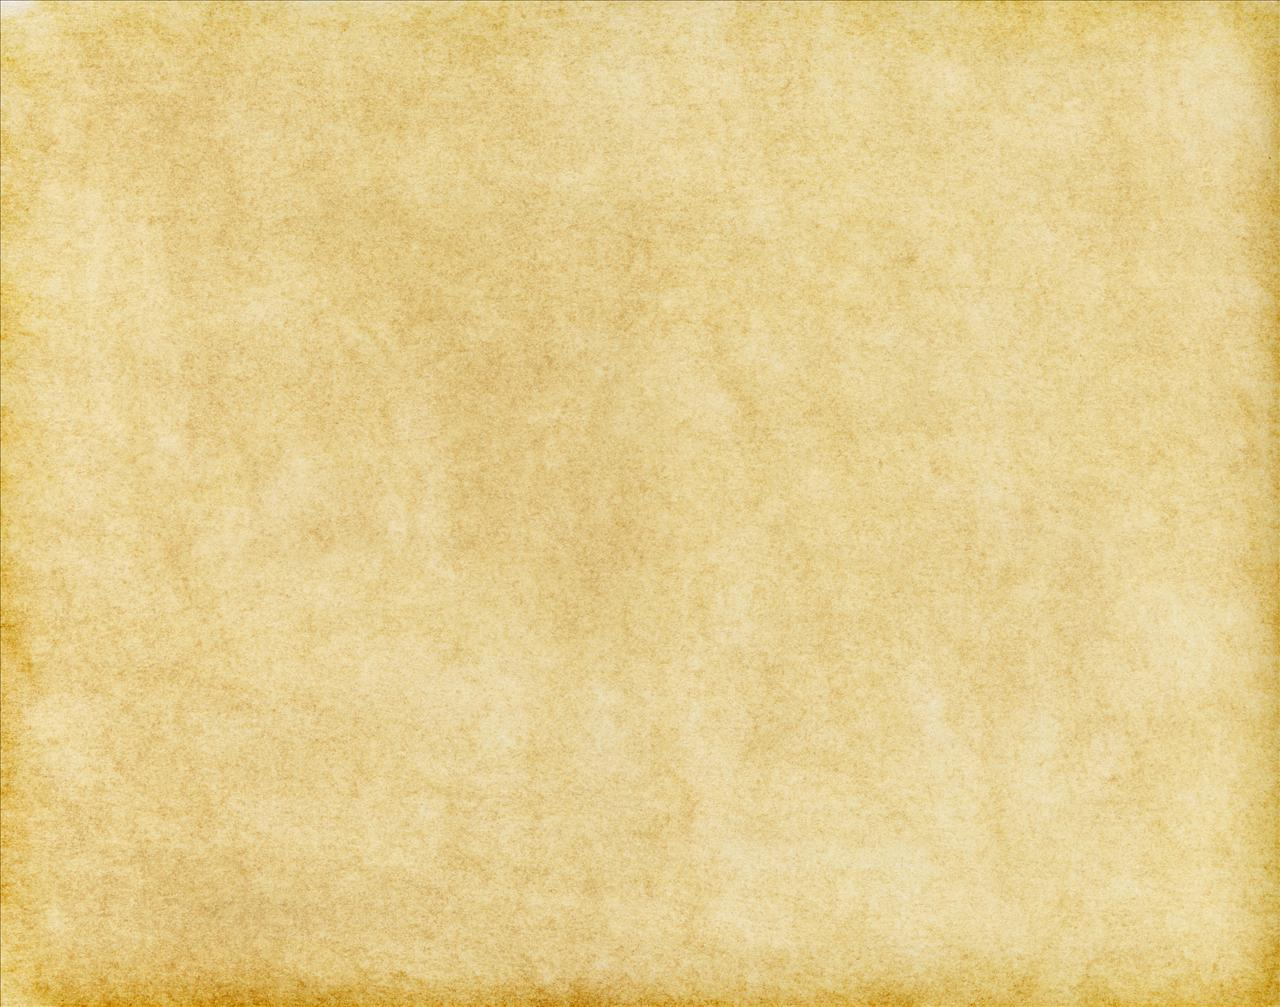 antique paper background